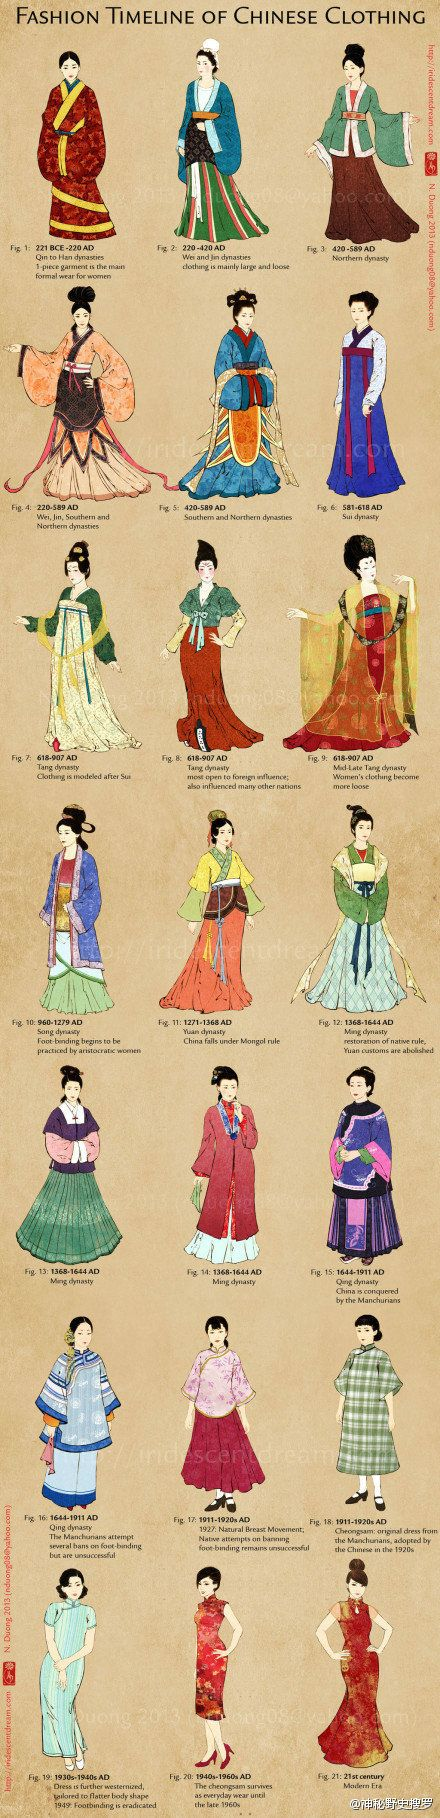 This chart is especially helpful in dating and identifying the time periods of ancient chinese clothing, as well as studying its evolution through the ages.